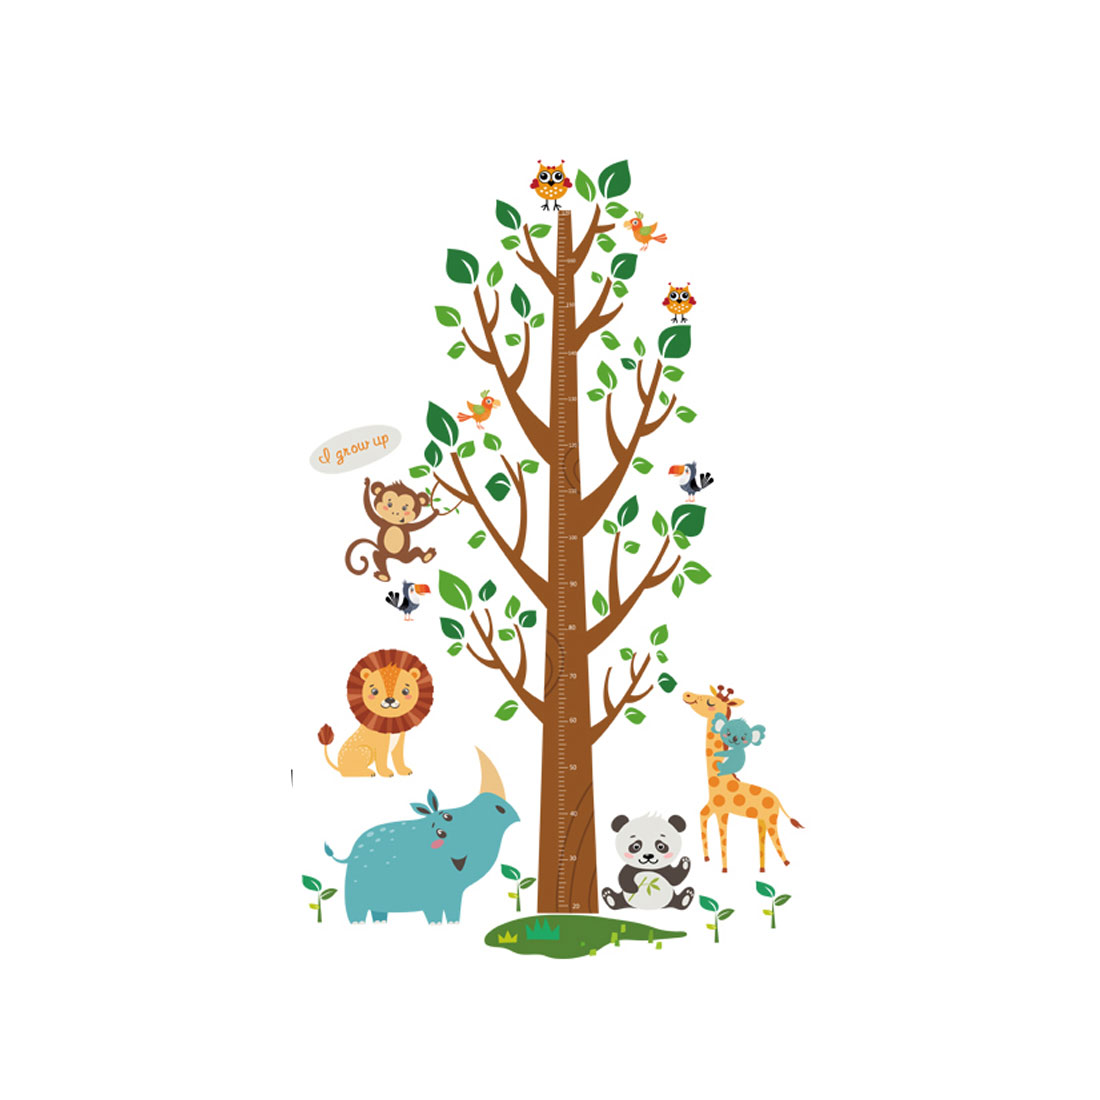 Home PVC Animals Height Tree Prints DIY Ornament Wall Sticker Decal Mural 60 x 90cm